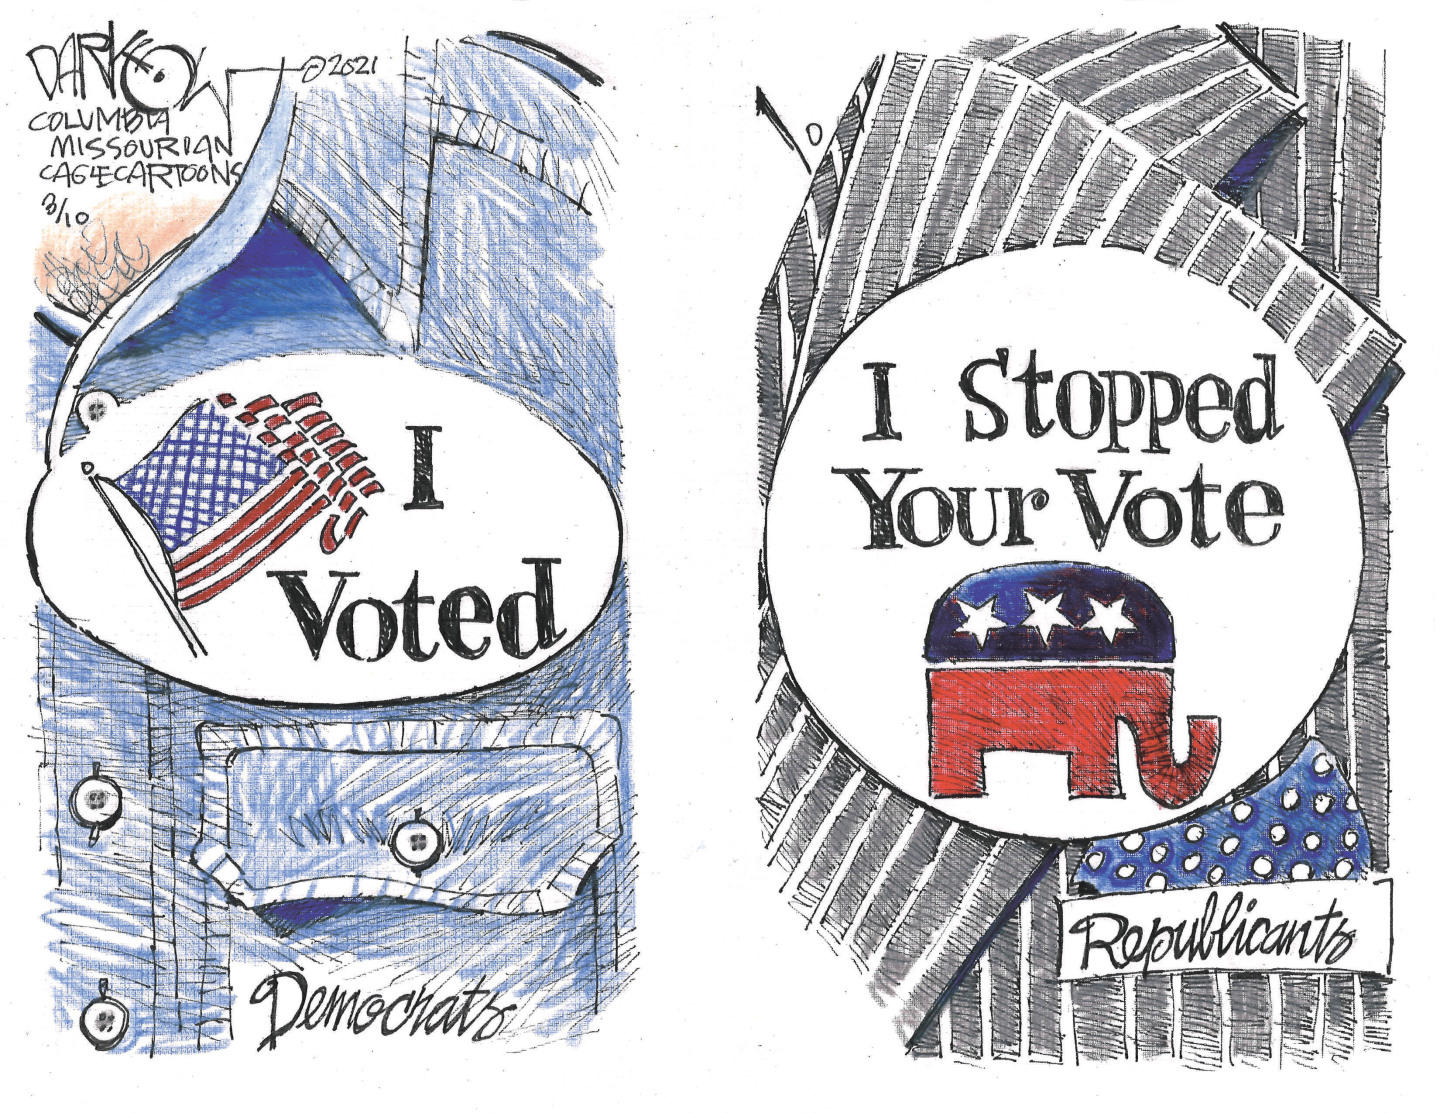 Republicans rely on voter suppression and gerrymandering to cling to office.